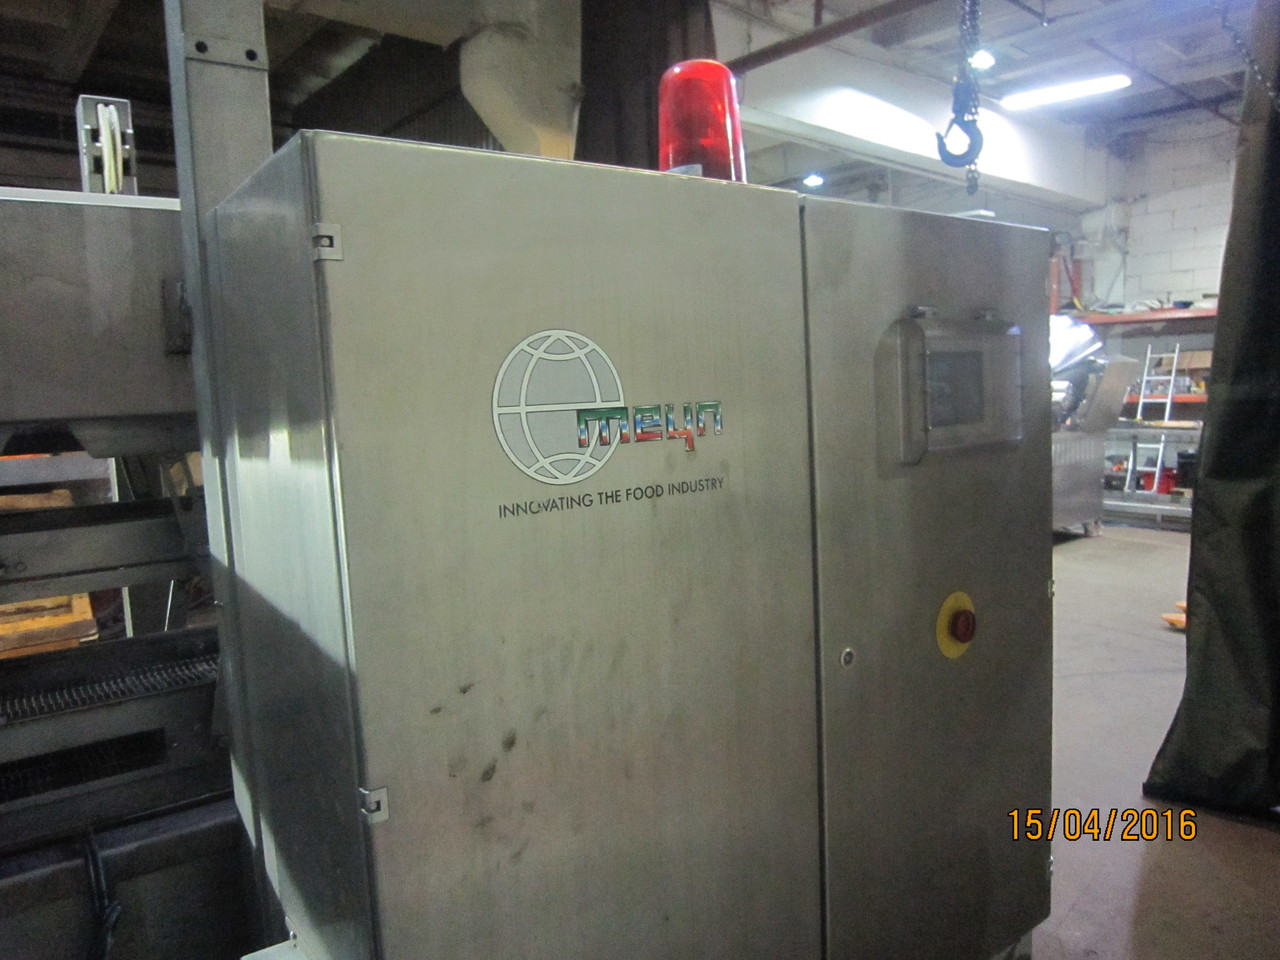 Meyn/Provatec – Forming and breading line for burgers